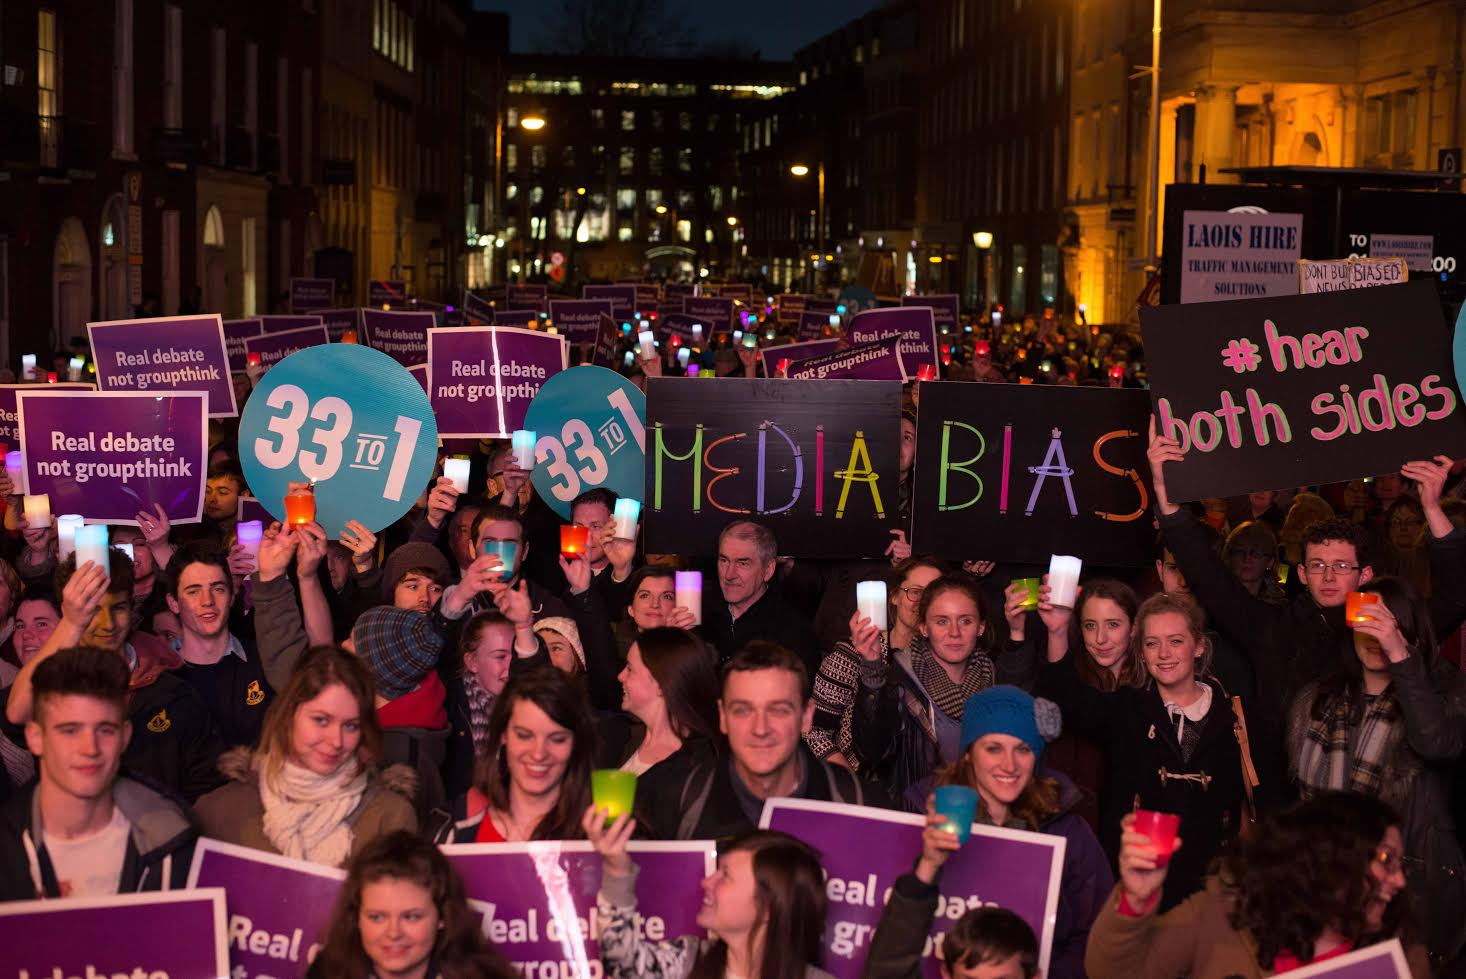 11.03.2015: Media bias on abortion so entrenched it cannot be ignored any longer, says PLC